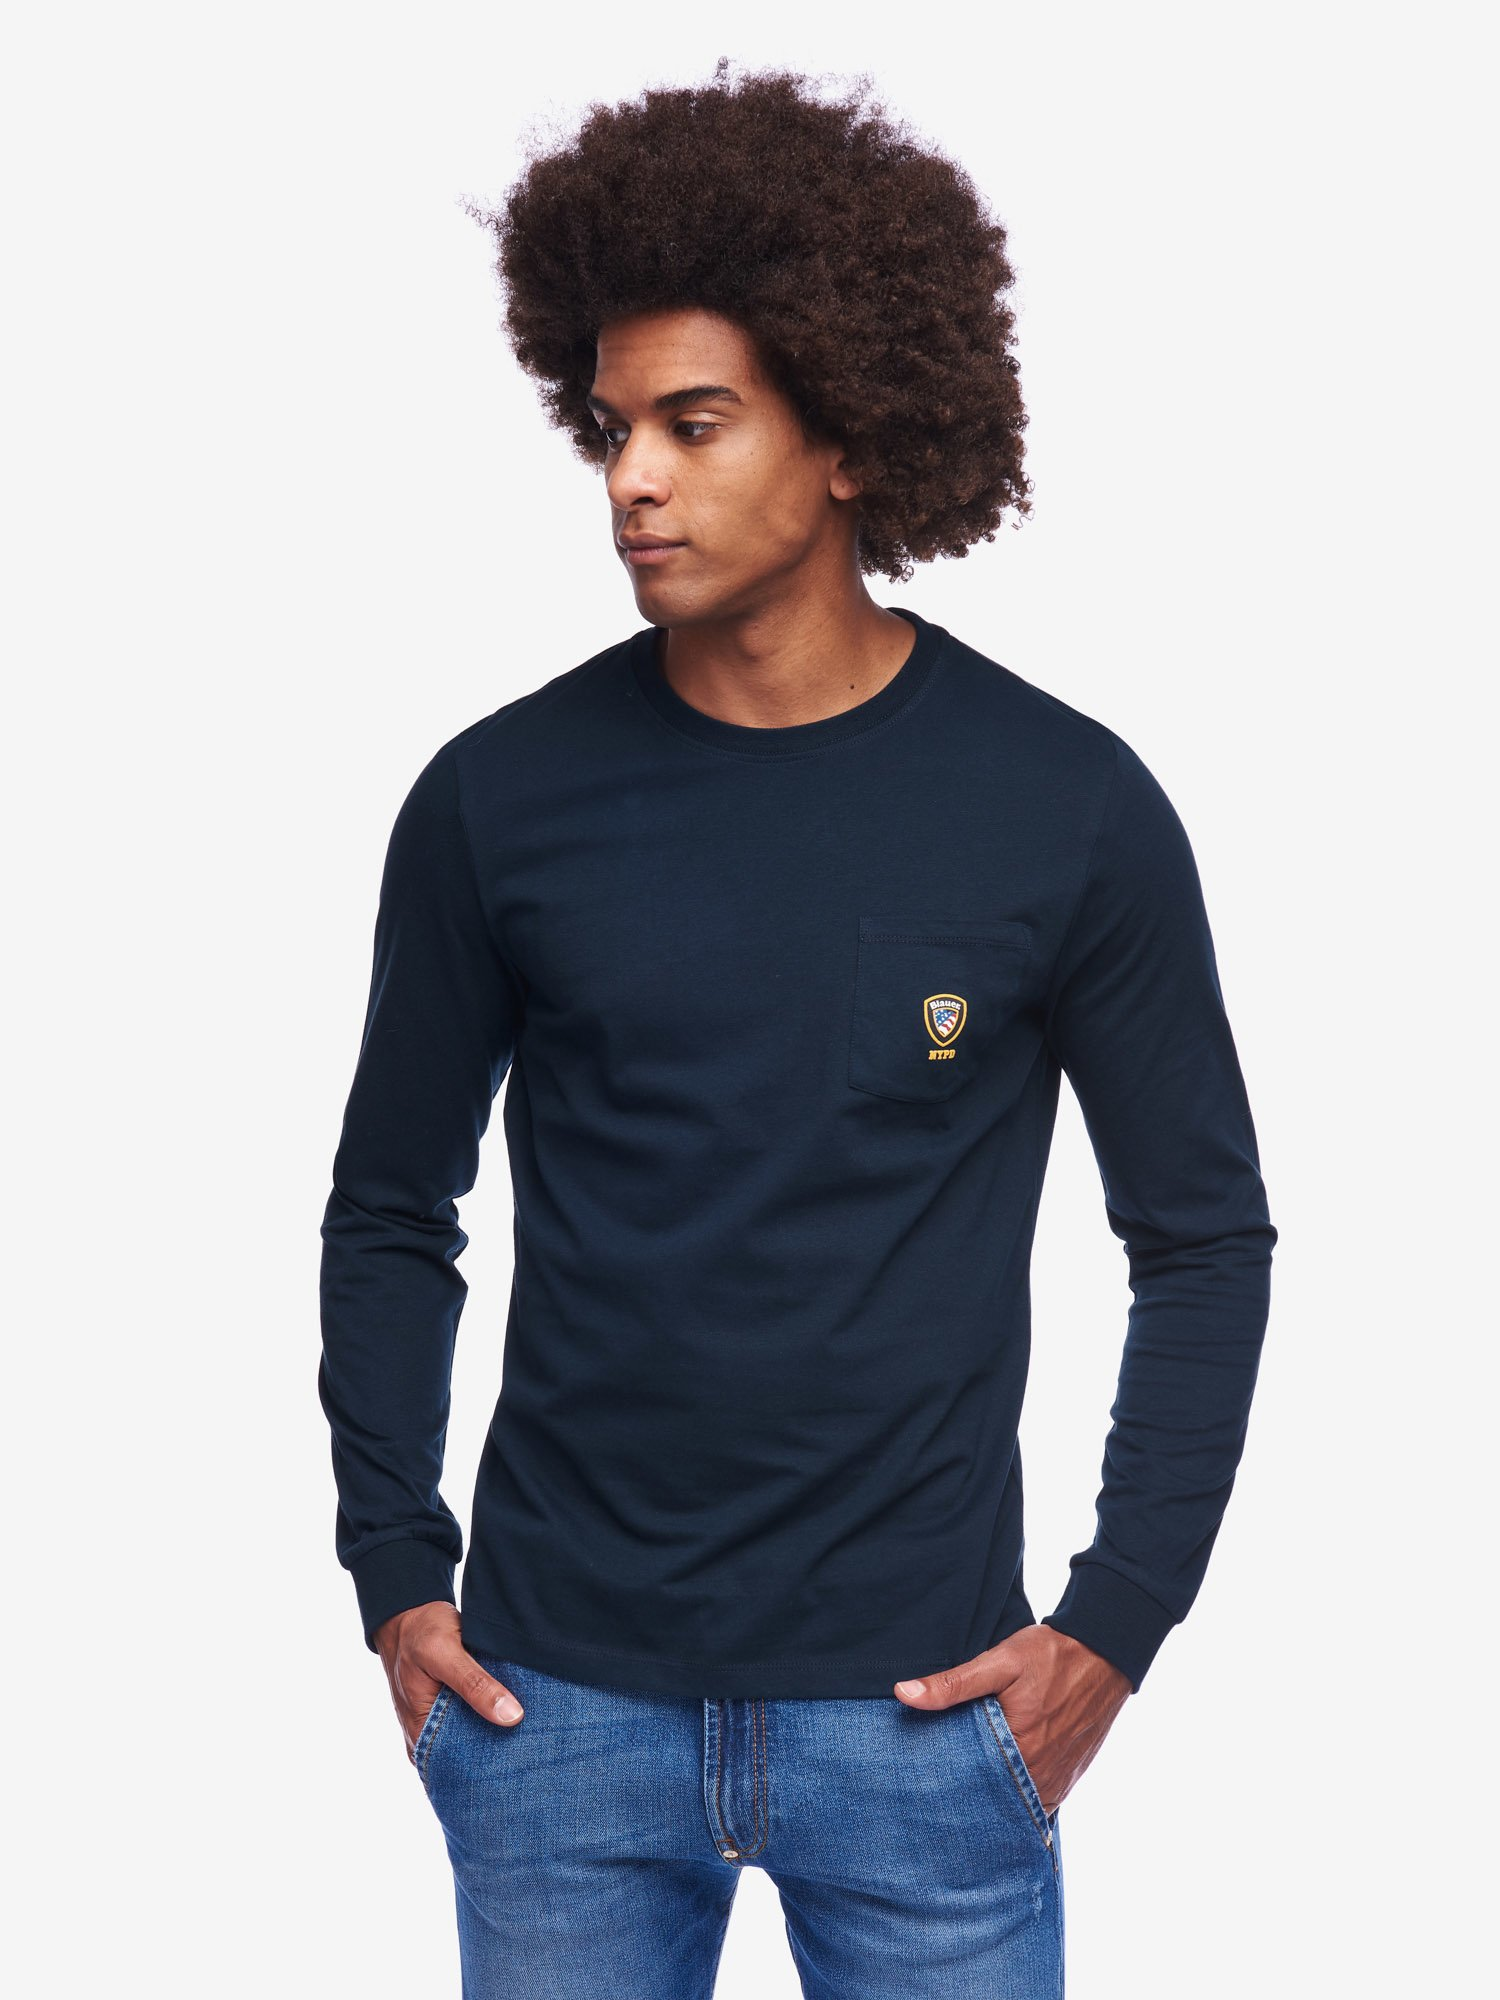 LONG SLEEVE T-SHIRT ACADEMY WITH CREW NECK - Blauer